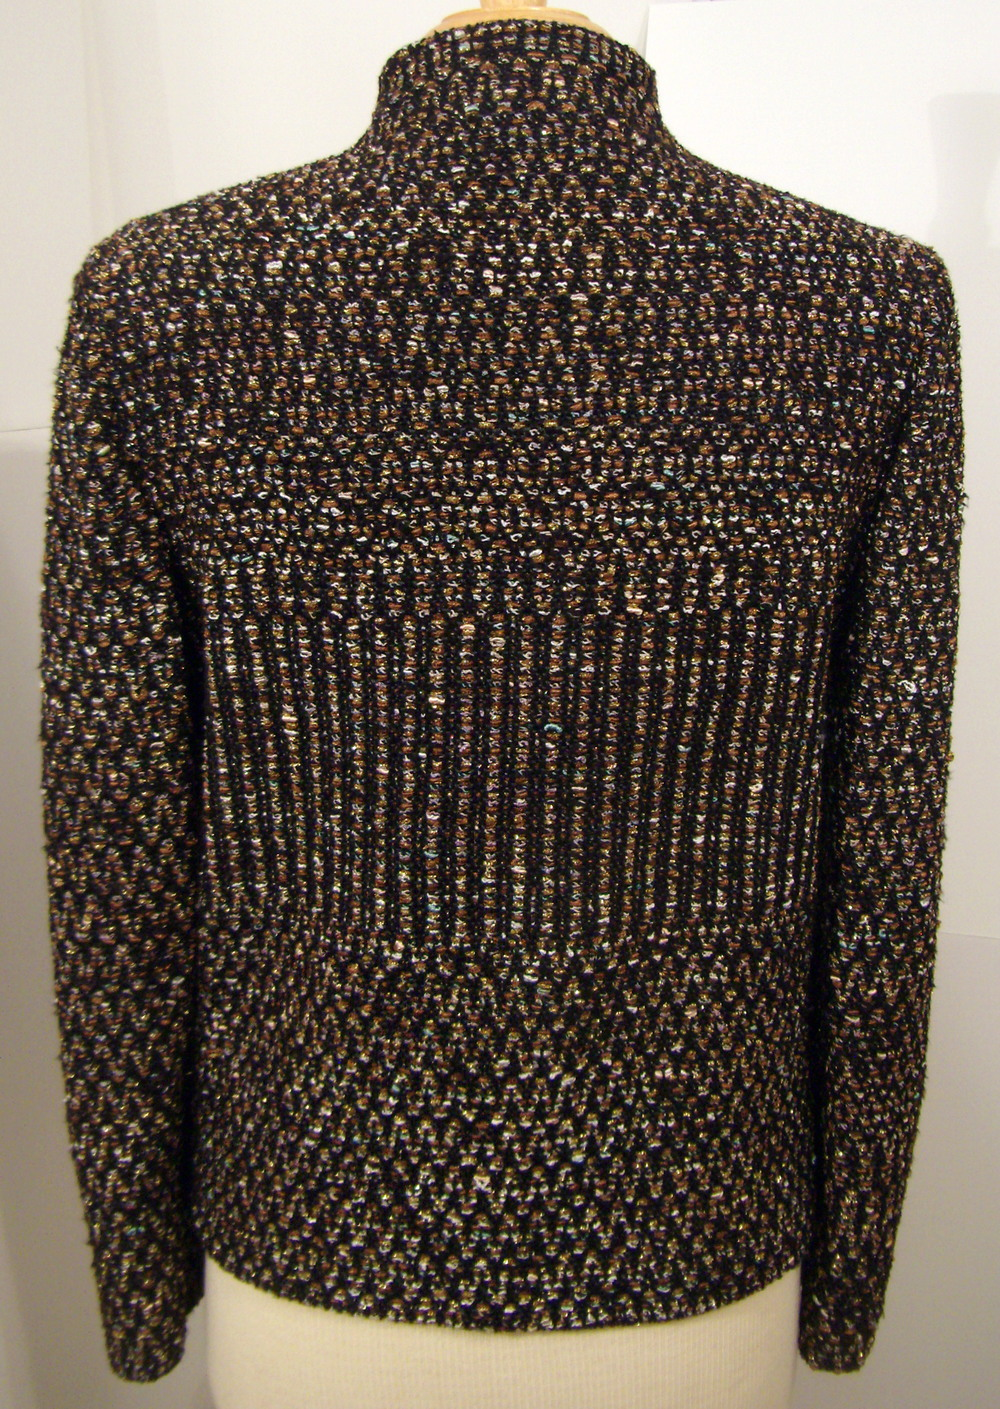 Hand Woven Jacket, Kathleen Weir-West, Fiber Art 15.JPG